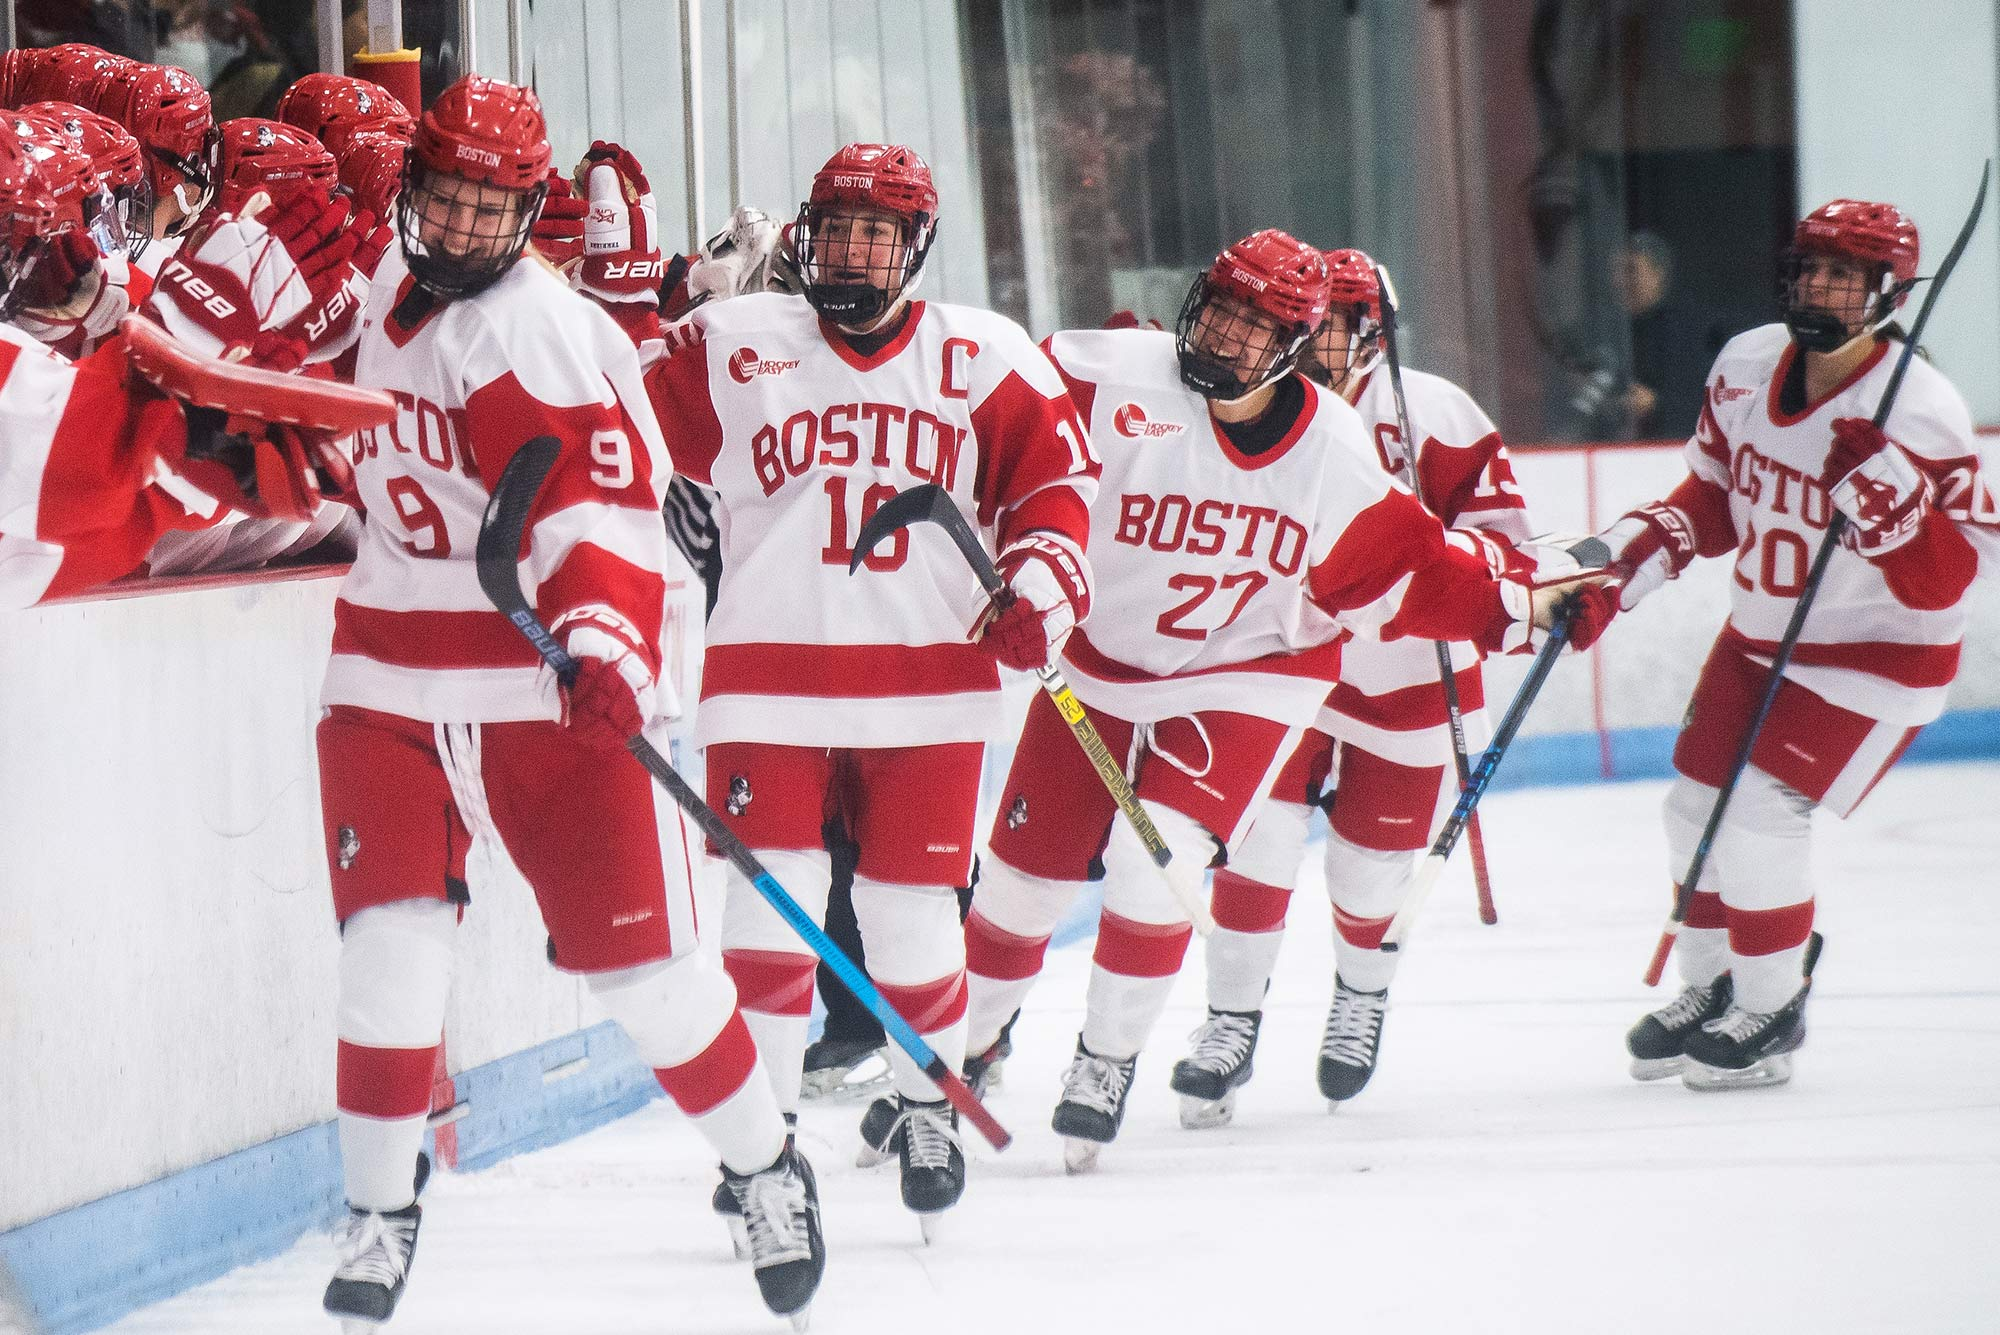 Members of BU's women's hockey team celebrate after scoring a goal in the first quarter against Boston College during the Women's Beanpot tournament on Tuesday, February, 4, 2020